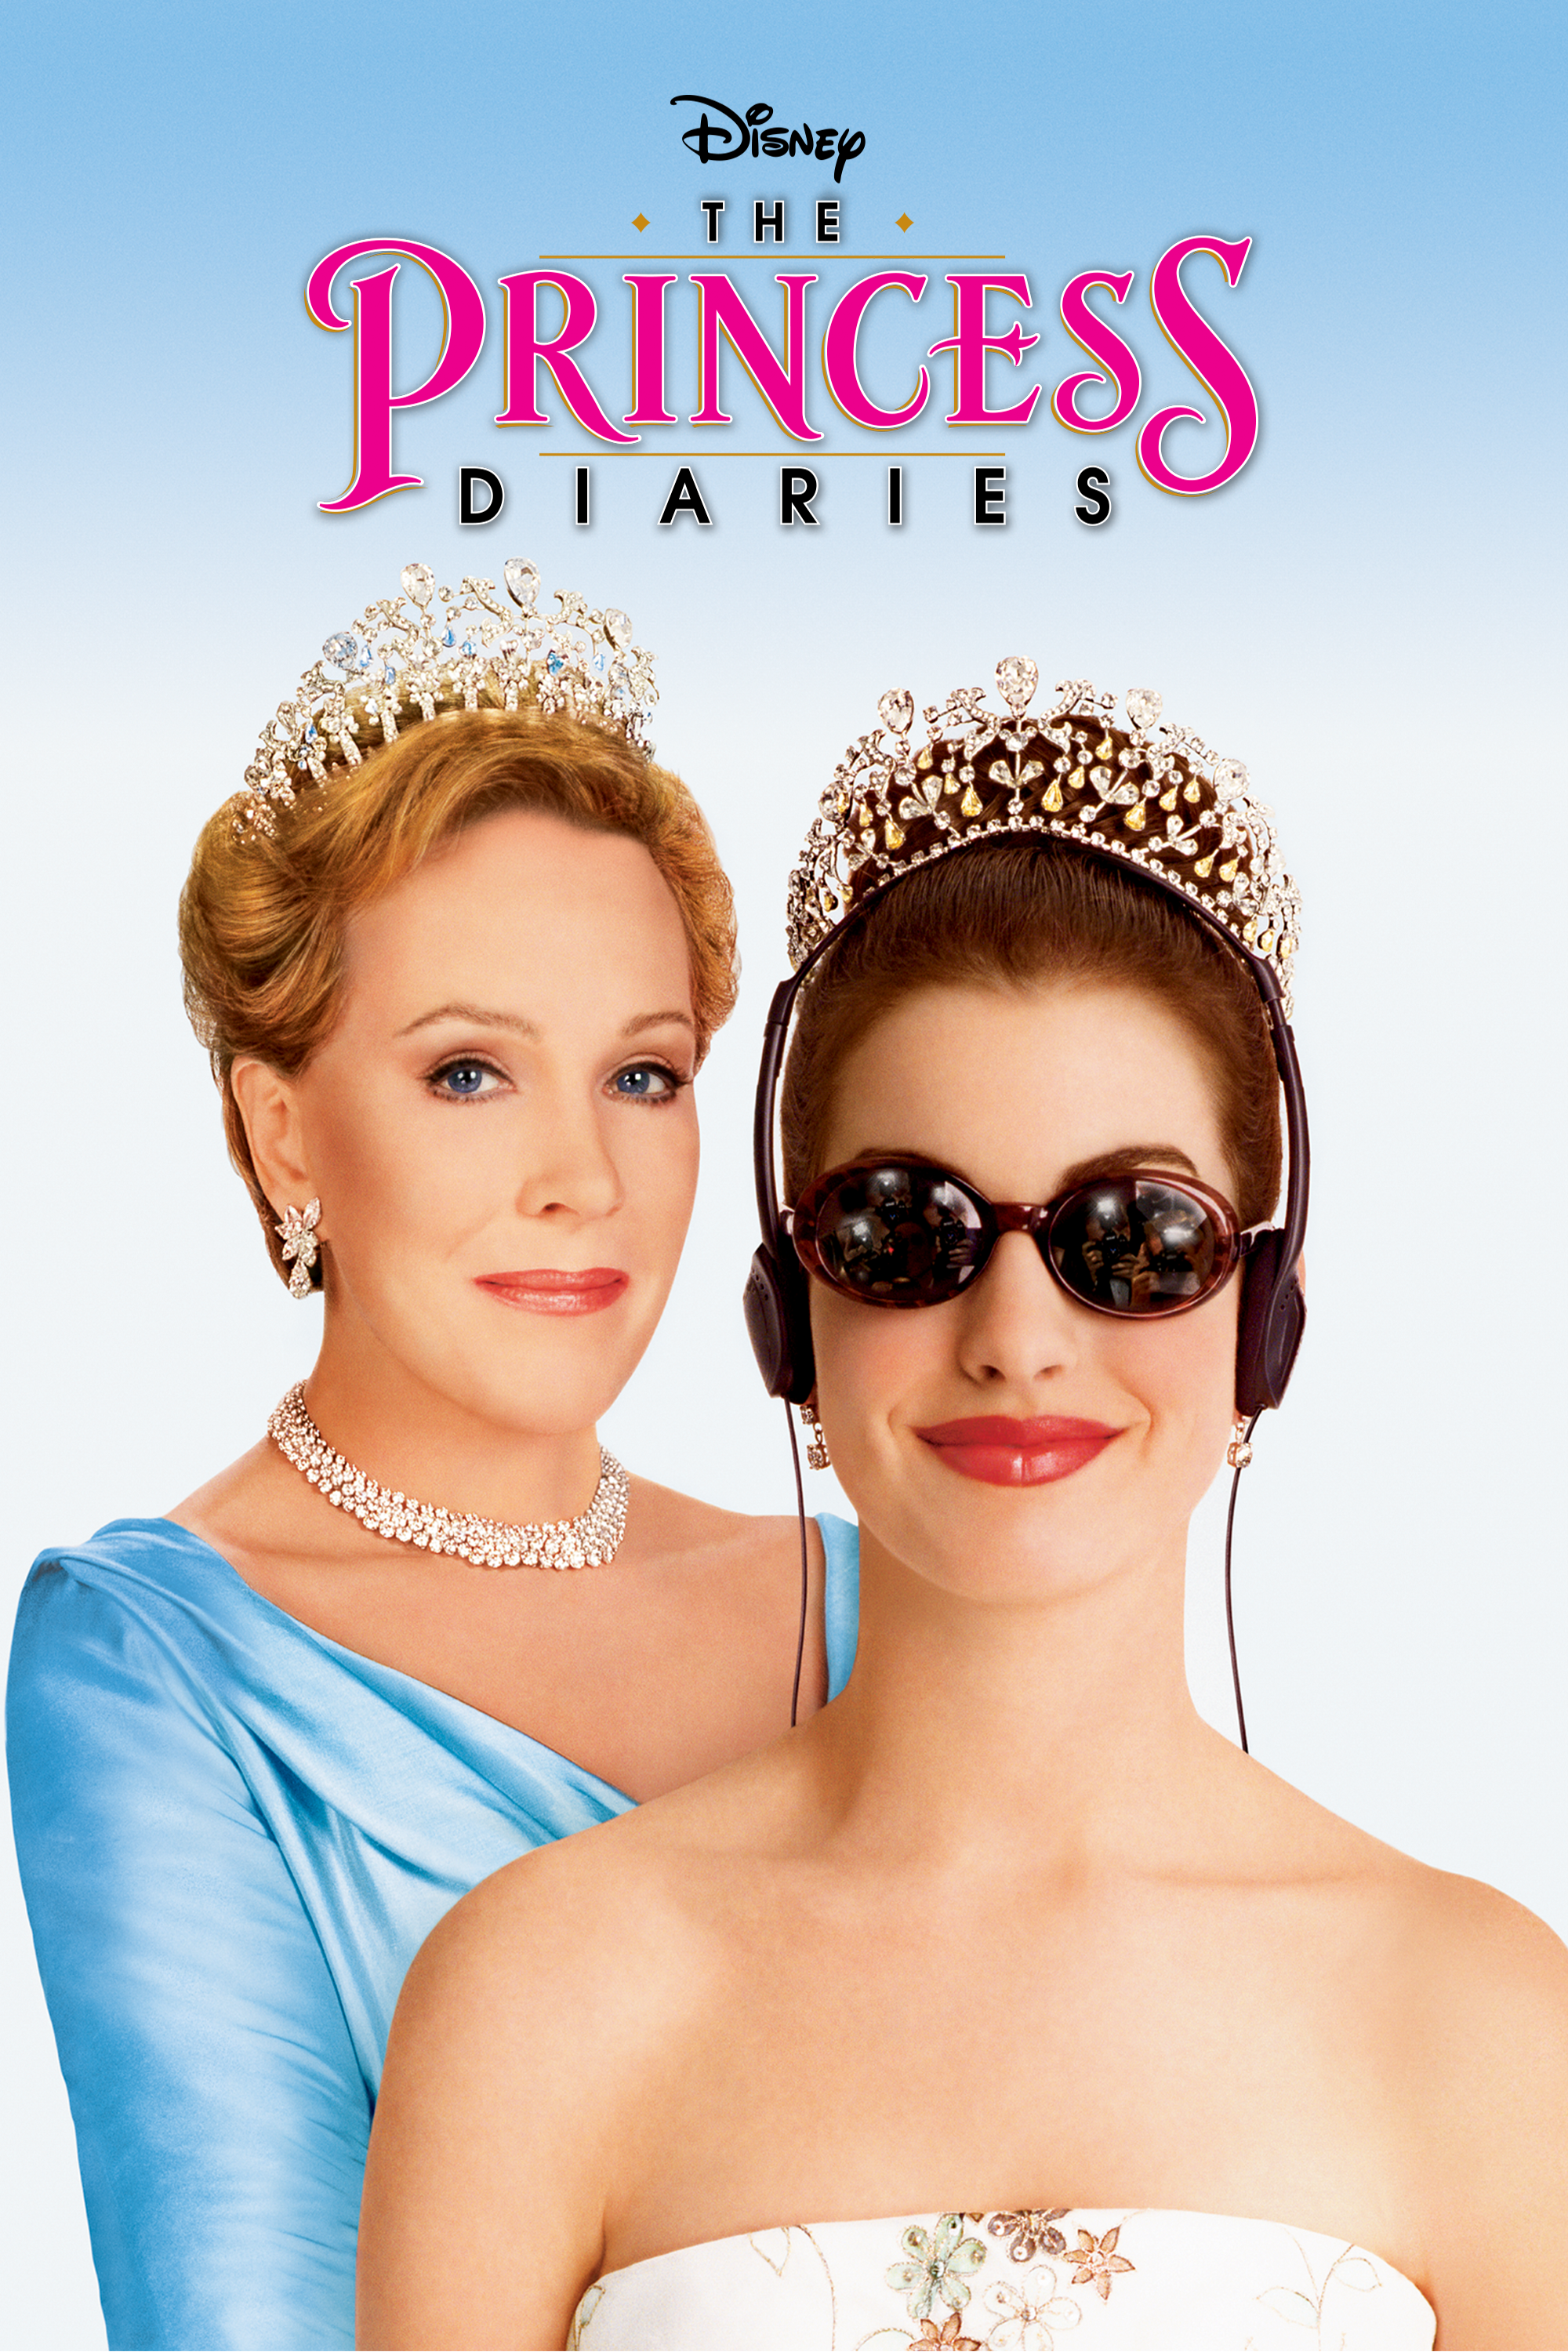 Watch The Princess Diaries | Full Movie | Disney+